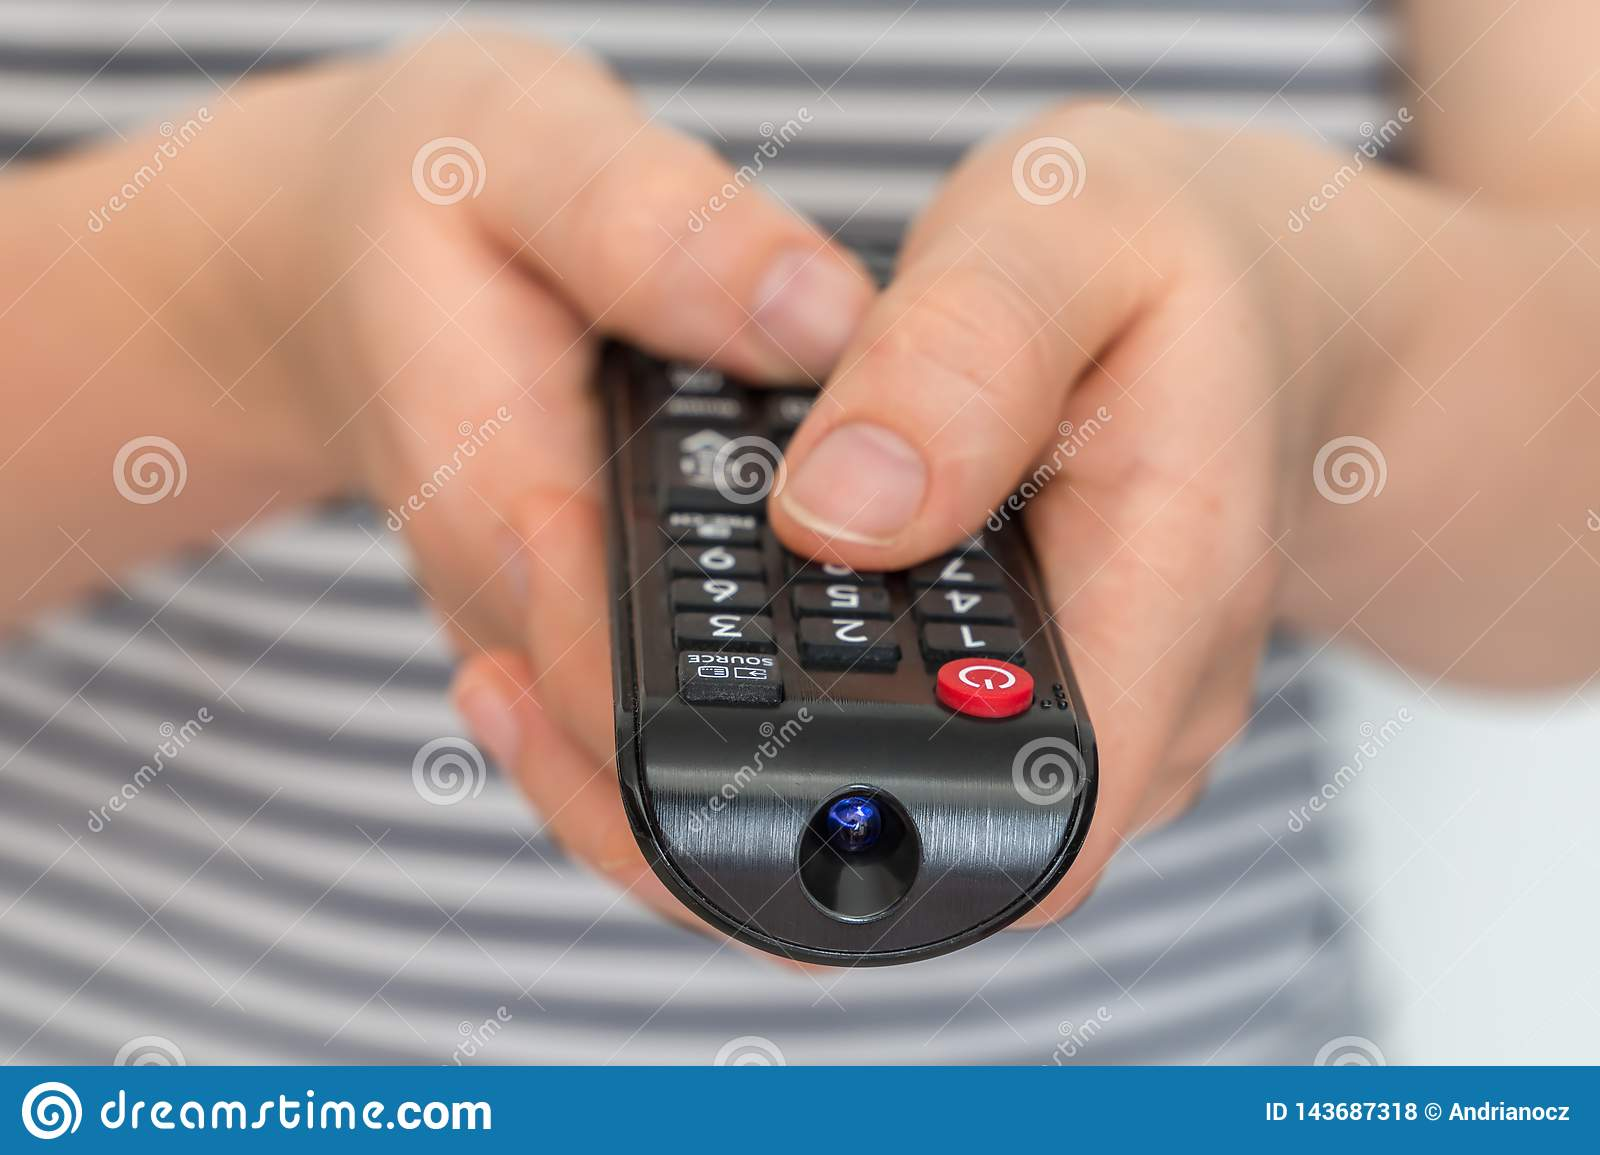 Remote control in female hands pointing to TV